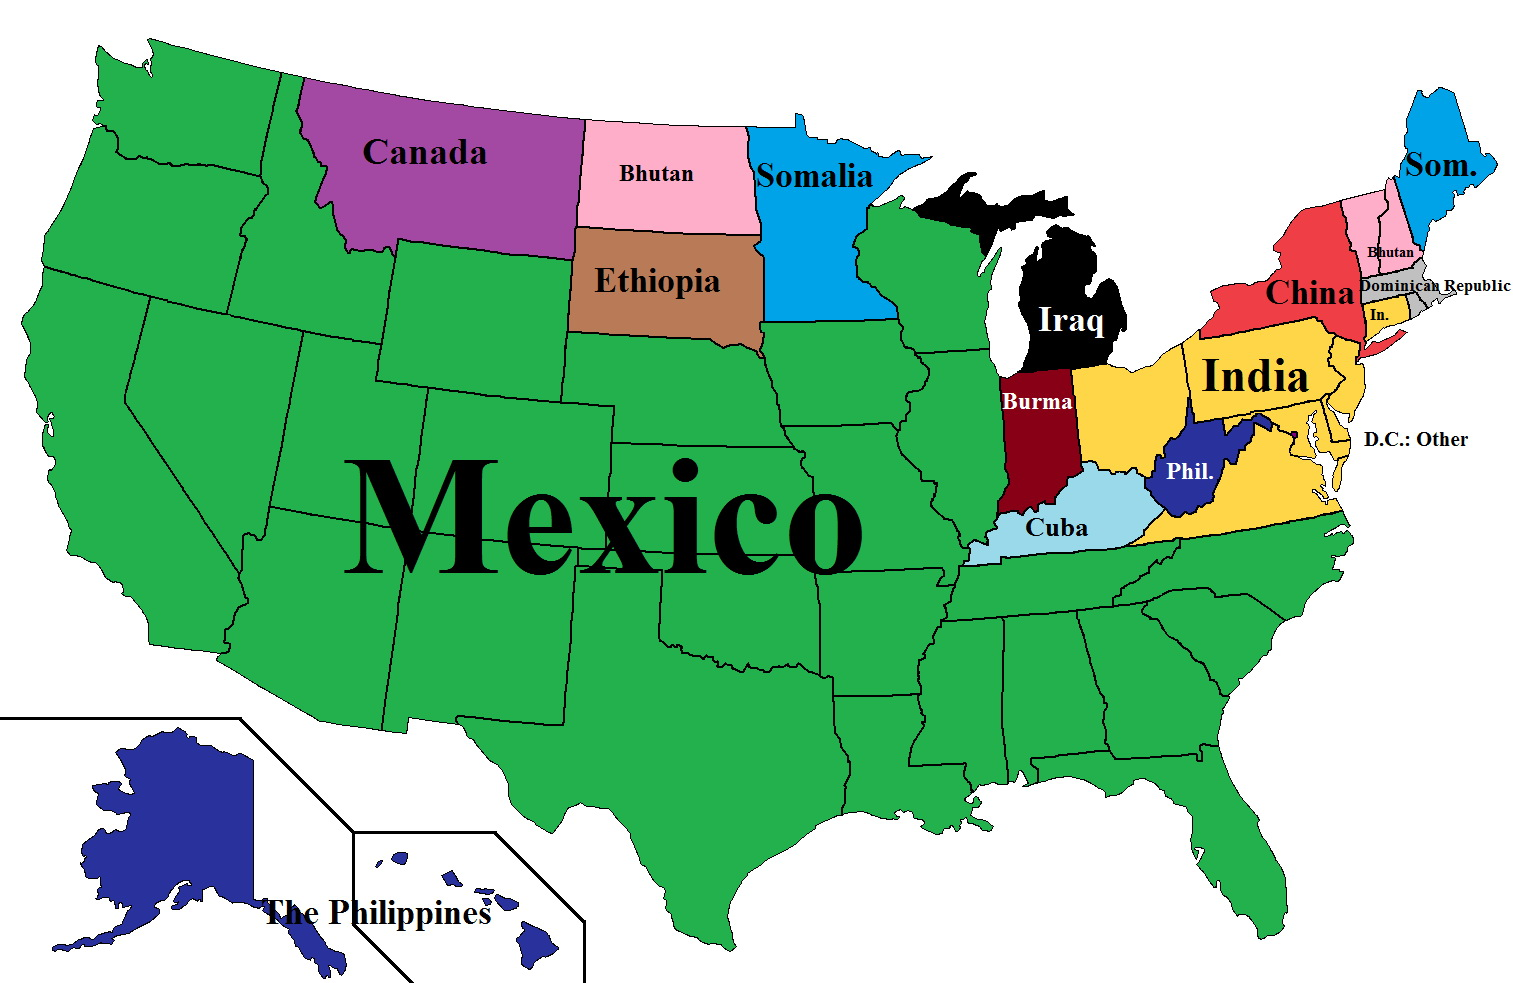 Most common nation of origin (including Mexico) of legal permanent residents in the U.S.